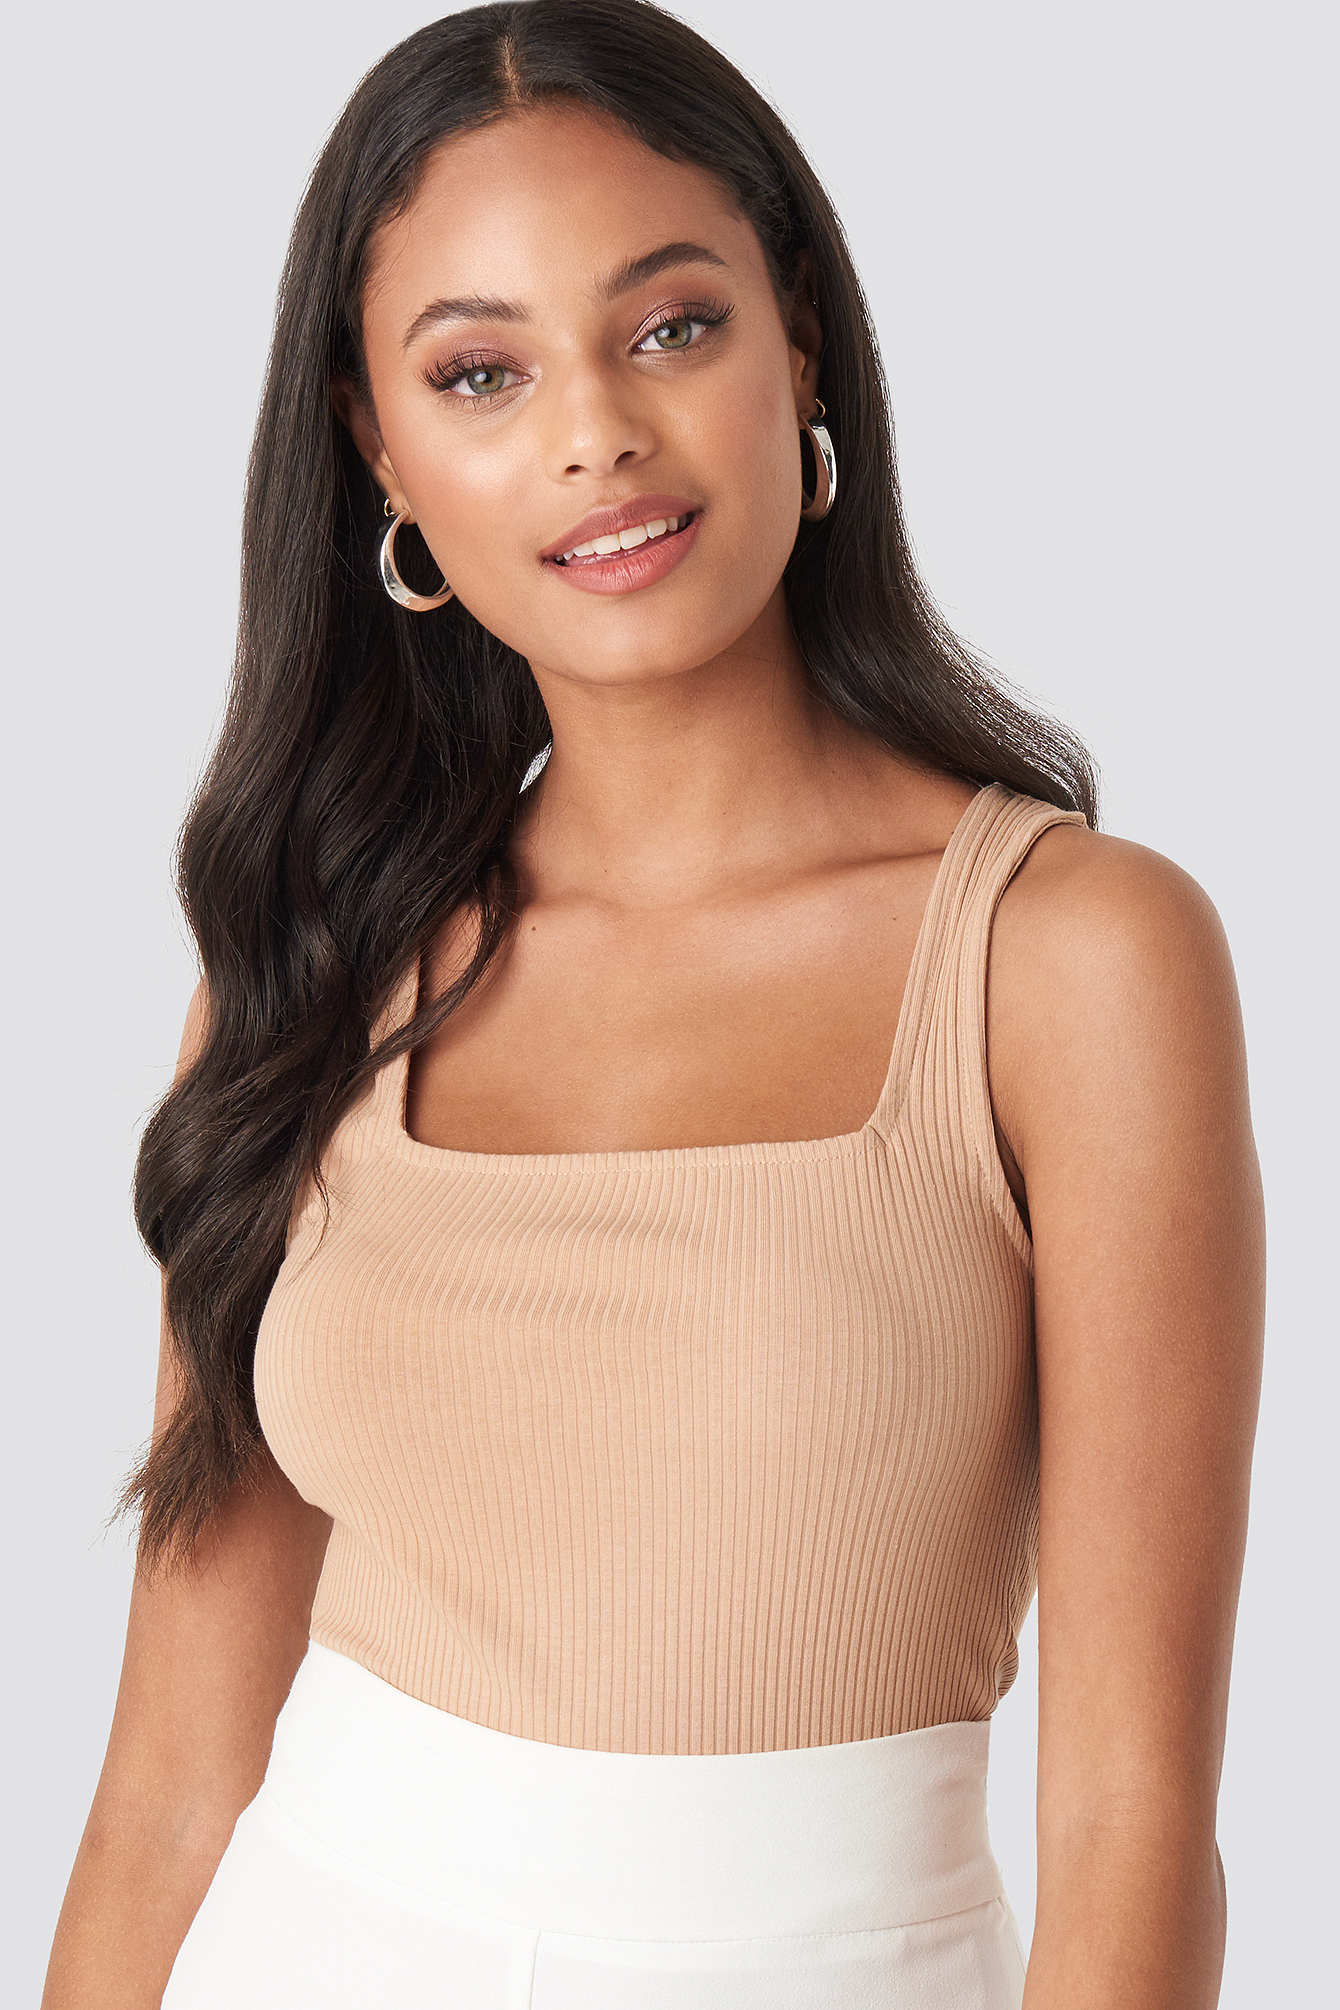 Square Neck Sleeveless Top Beige by Na Kd Trend